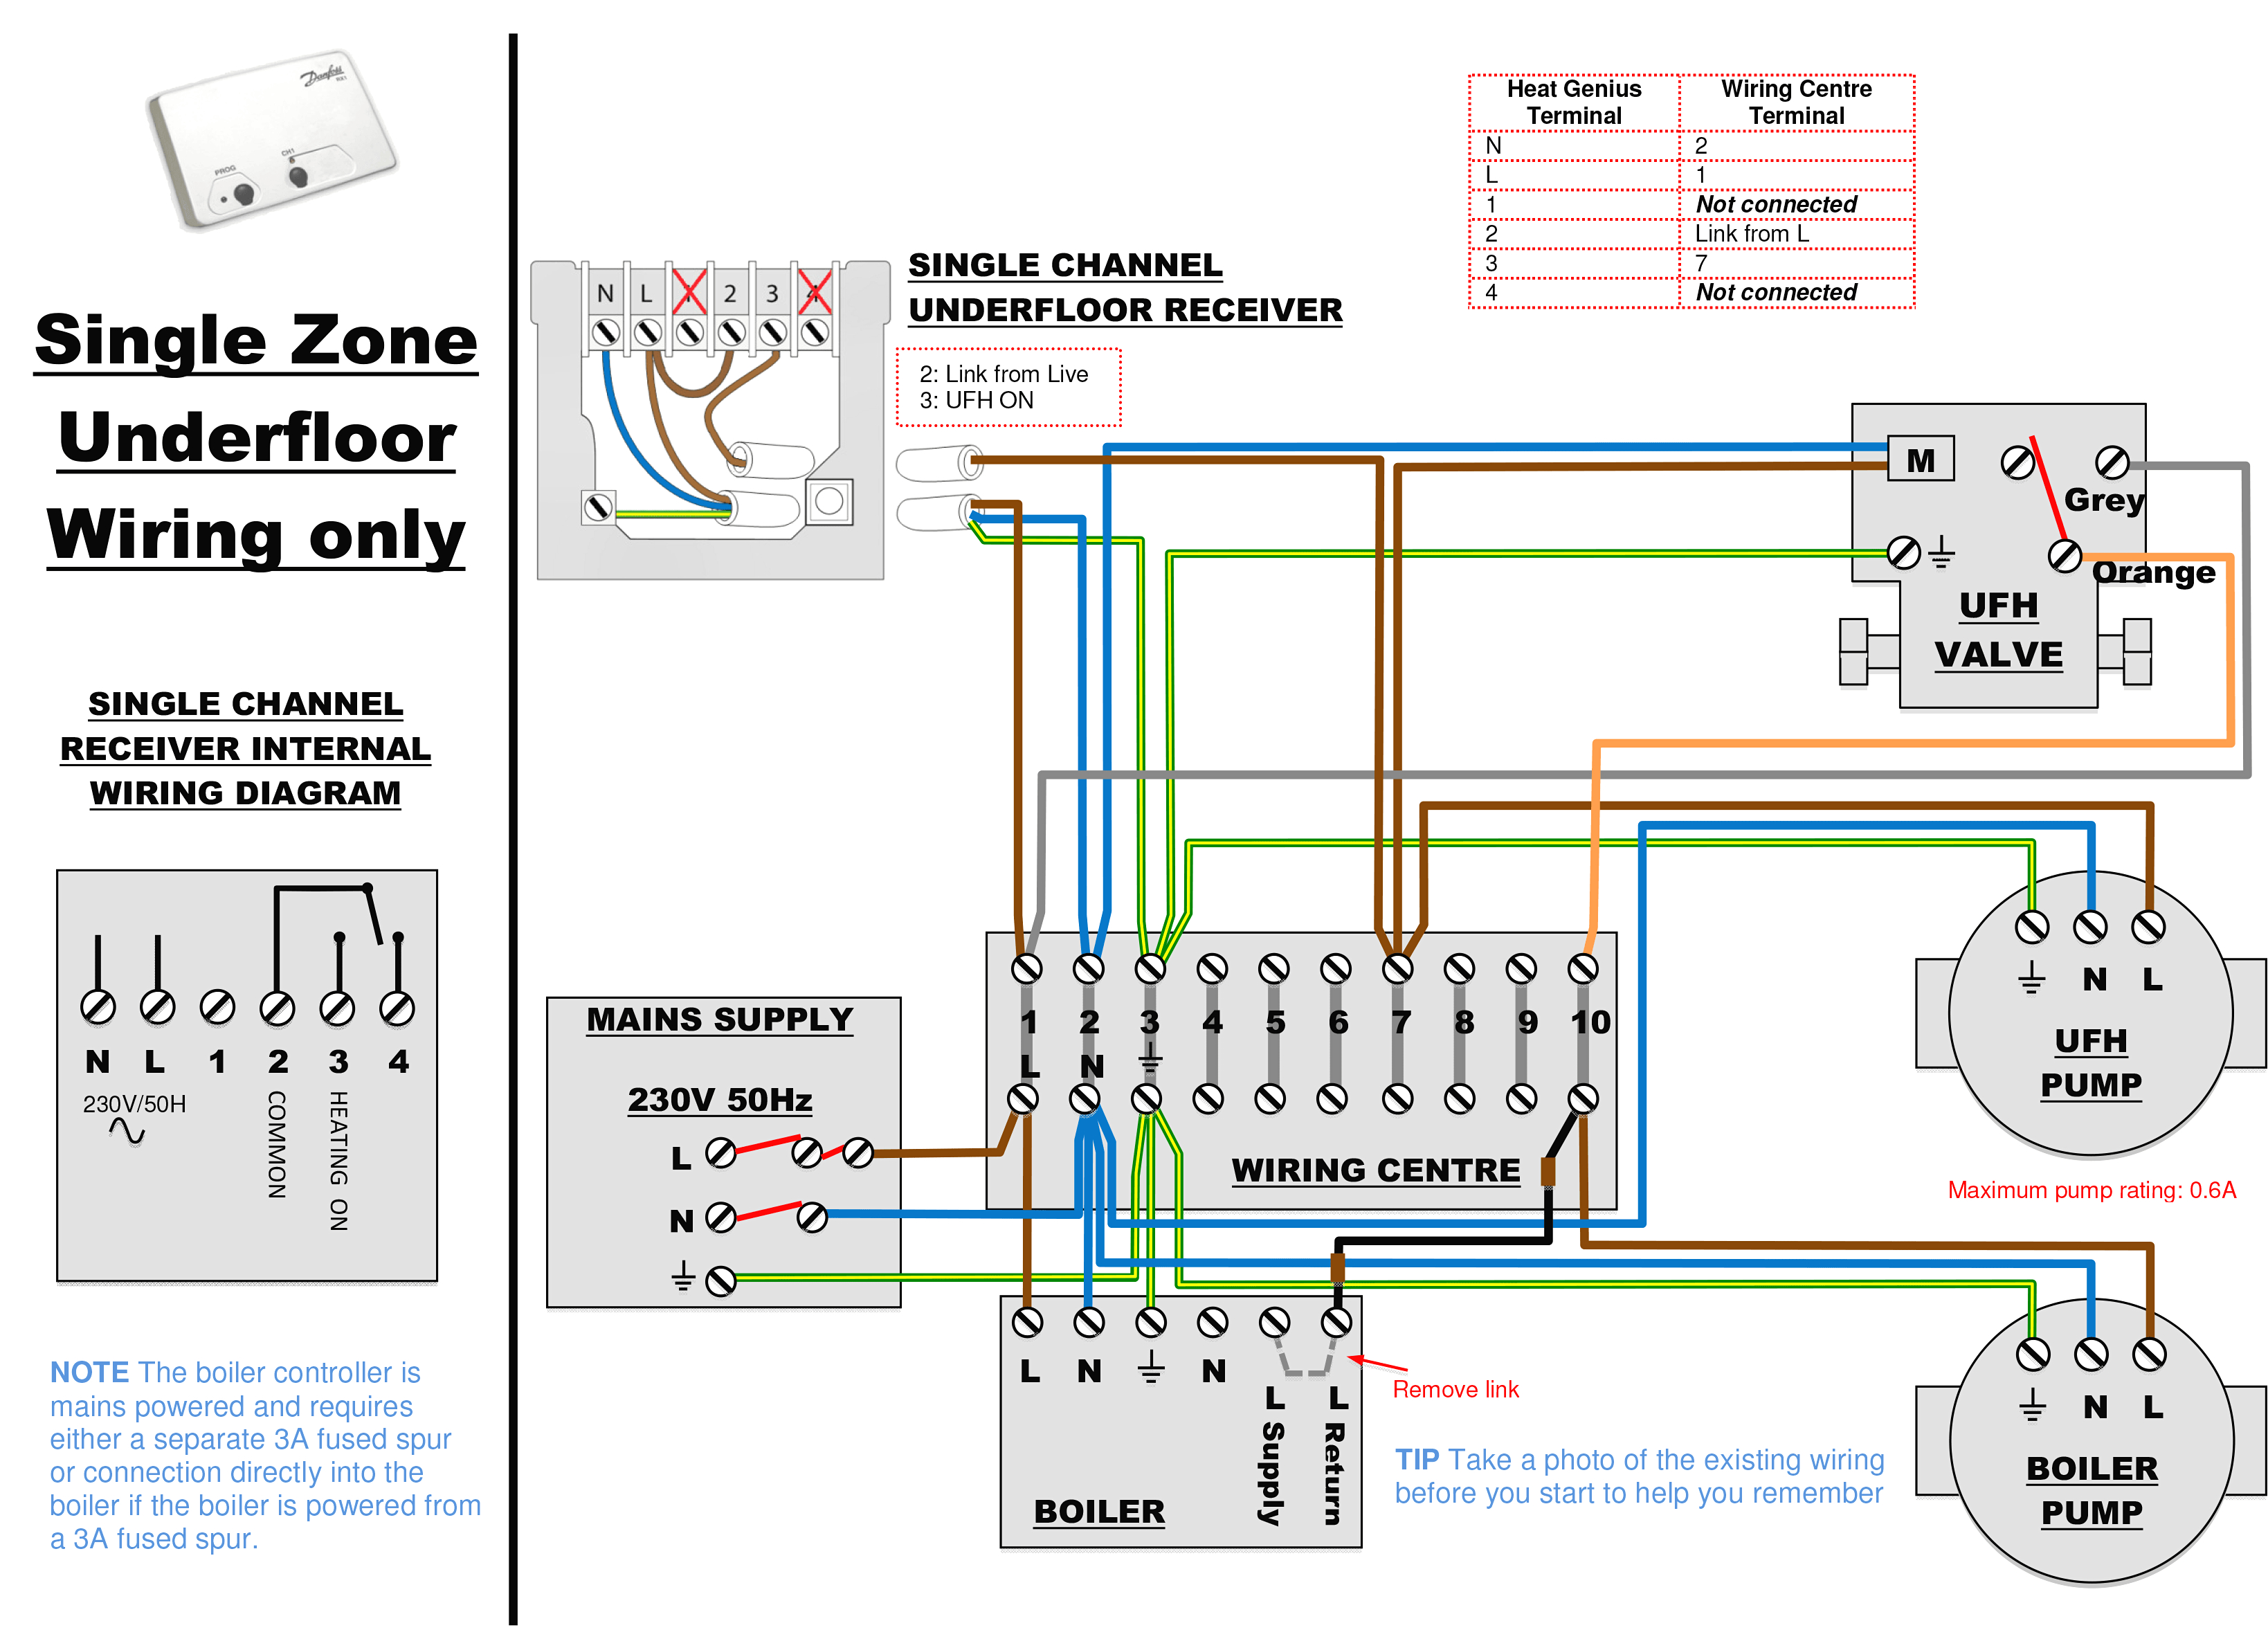 wirsbo underfloor heating wiring diagram wiring diagram sitewirsbo underfloor heating wiring diagram wiring diagram fascinating wirsbo